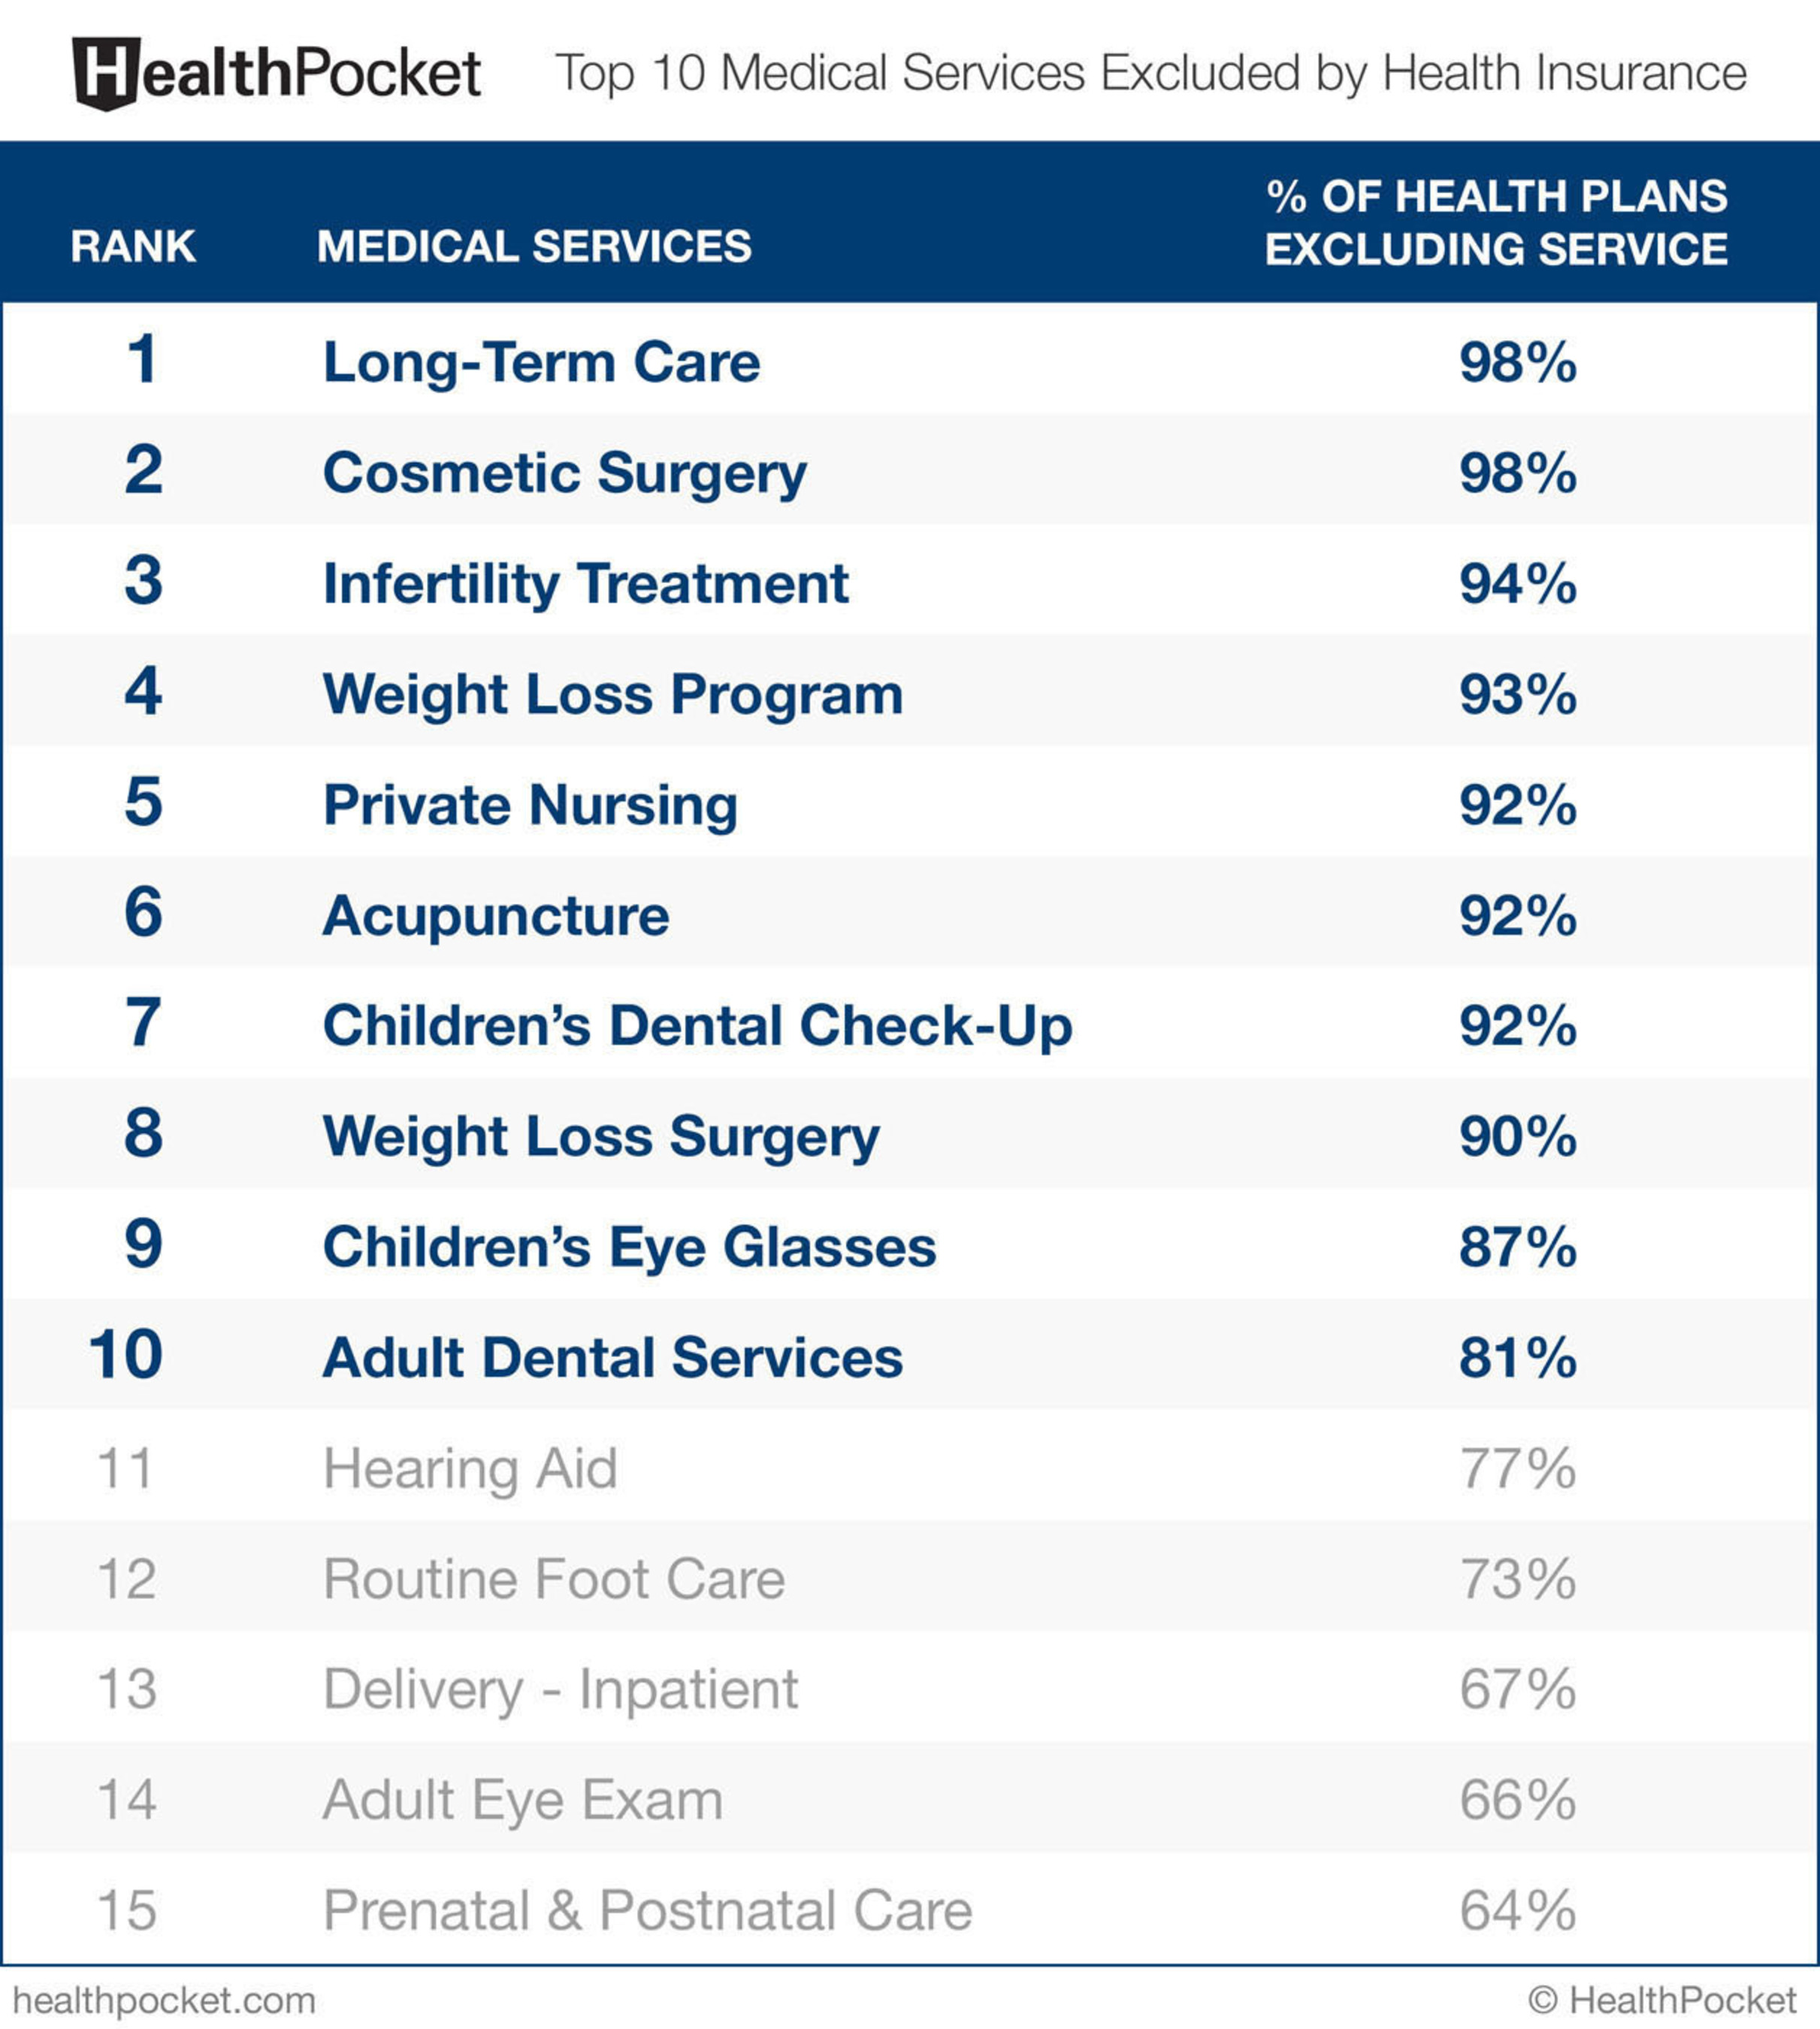 These medical services are most frequently not covered by health insurance providers, and can pack big costs to consumers. (PRNewsFoto/HealthPocket) (PRNewsFoto/HEALTHPOCKET)